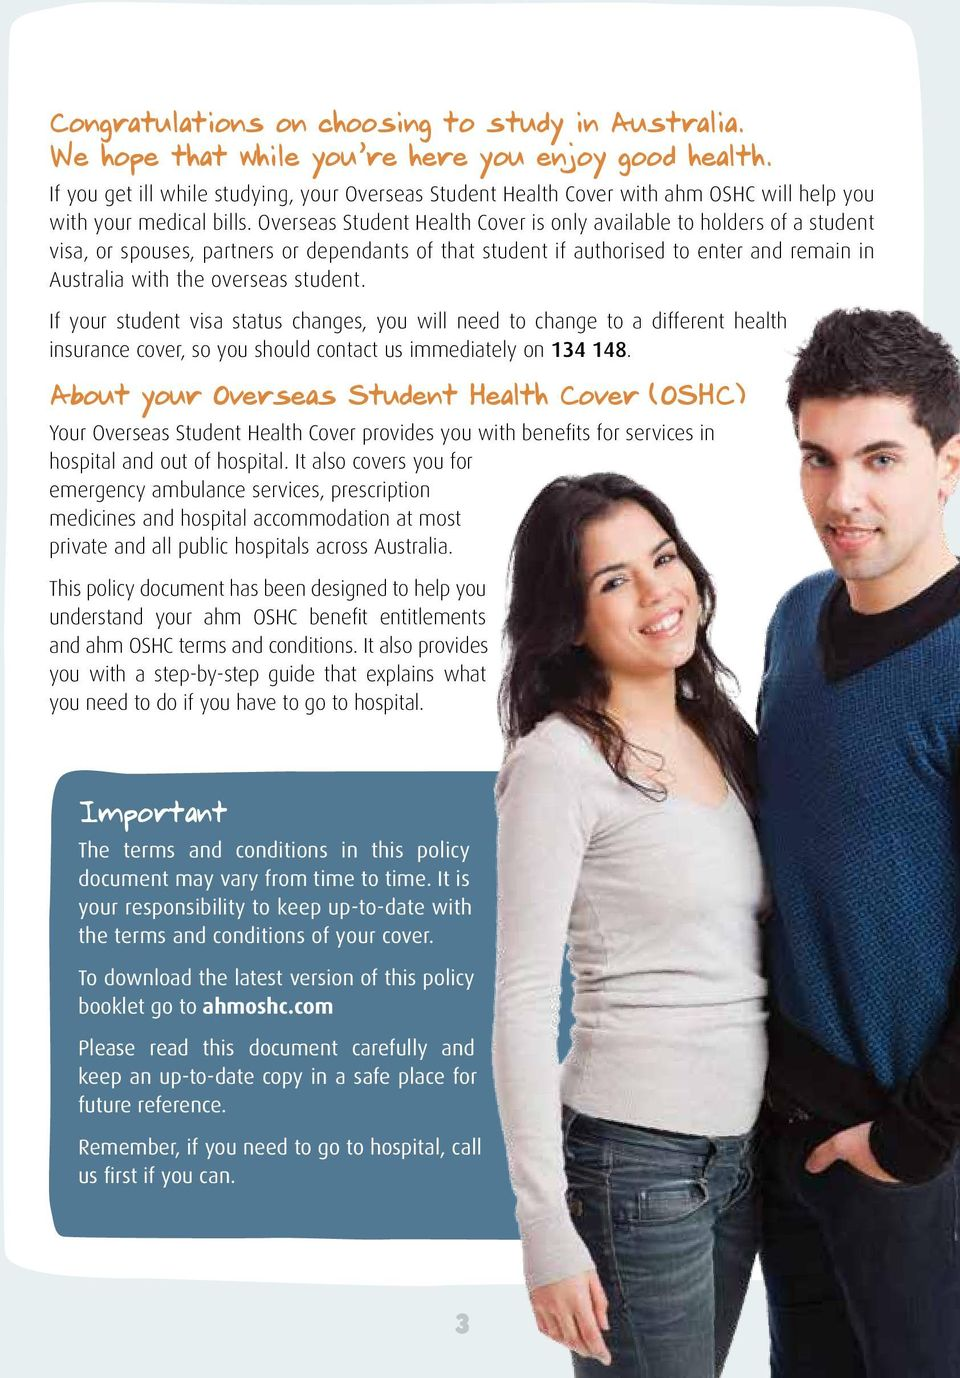 Overseas Student Health Cover is only available to holders of a student visa, or spouses, partners or dependants of that student if authorised to enter and remain in Australia with the overseas